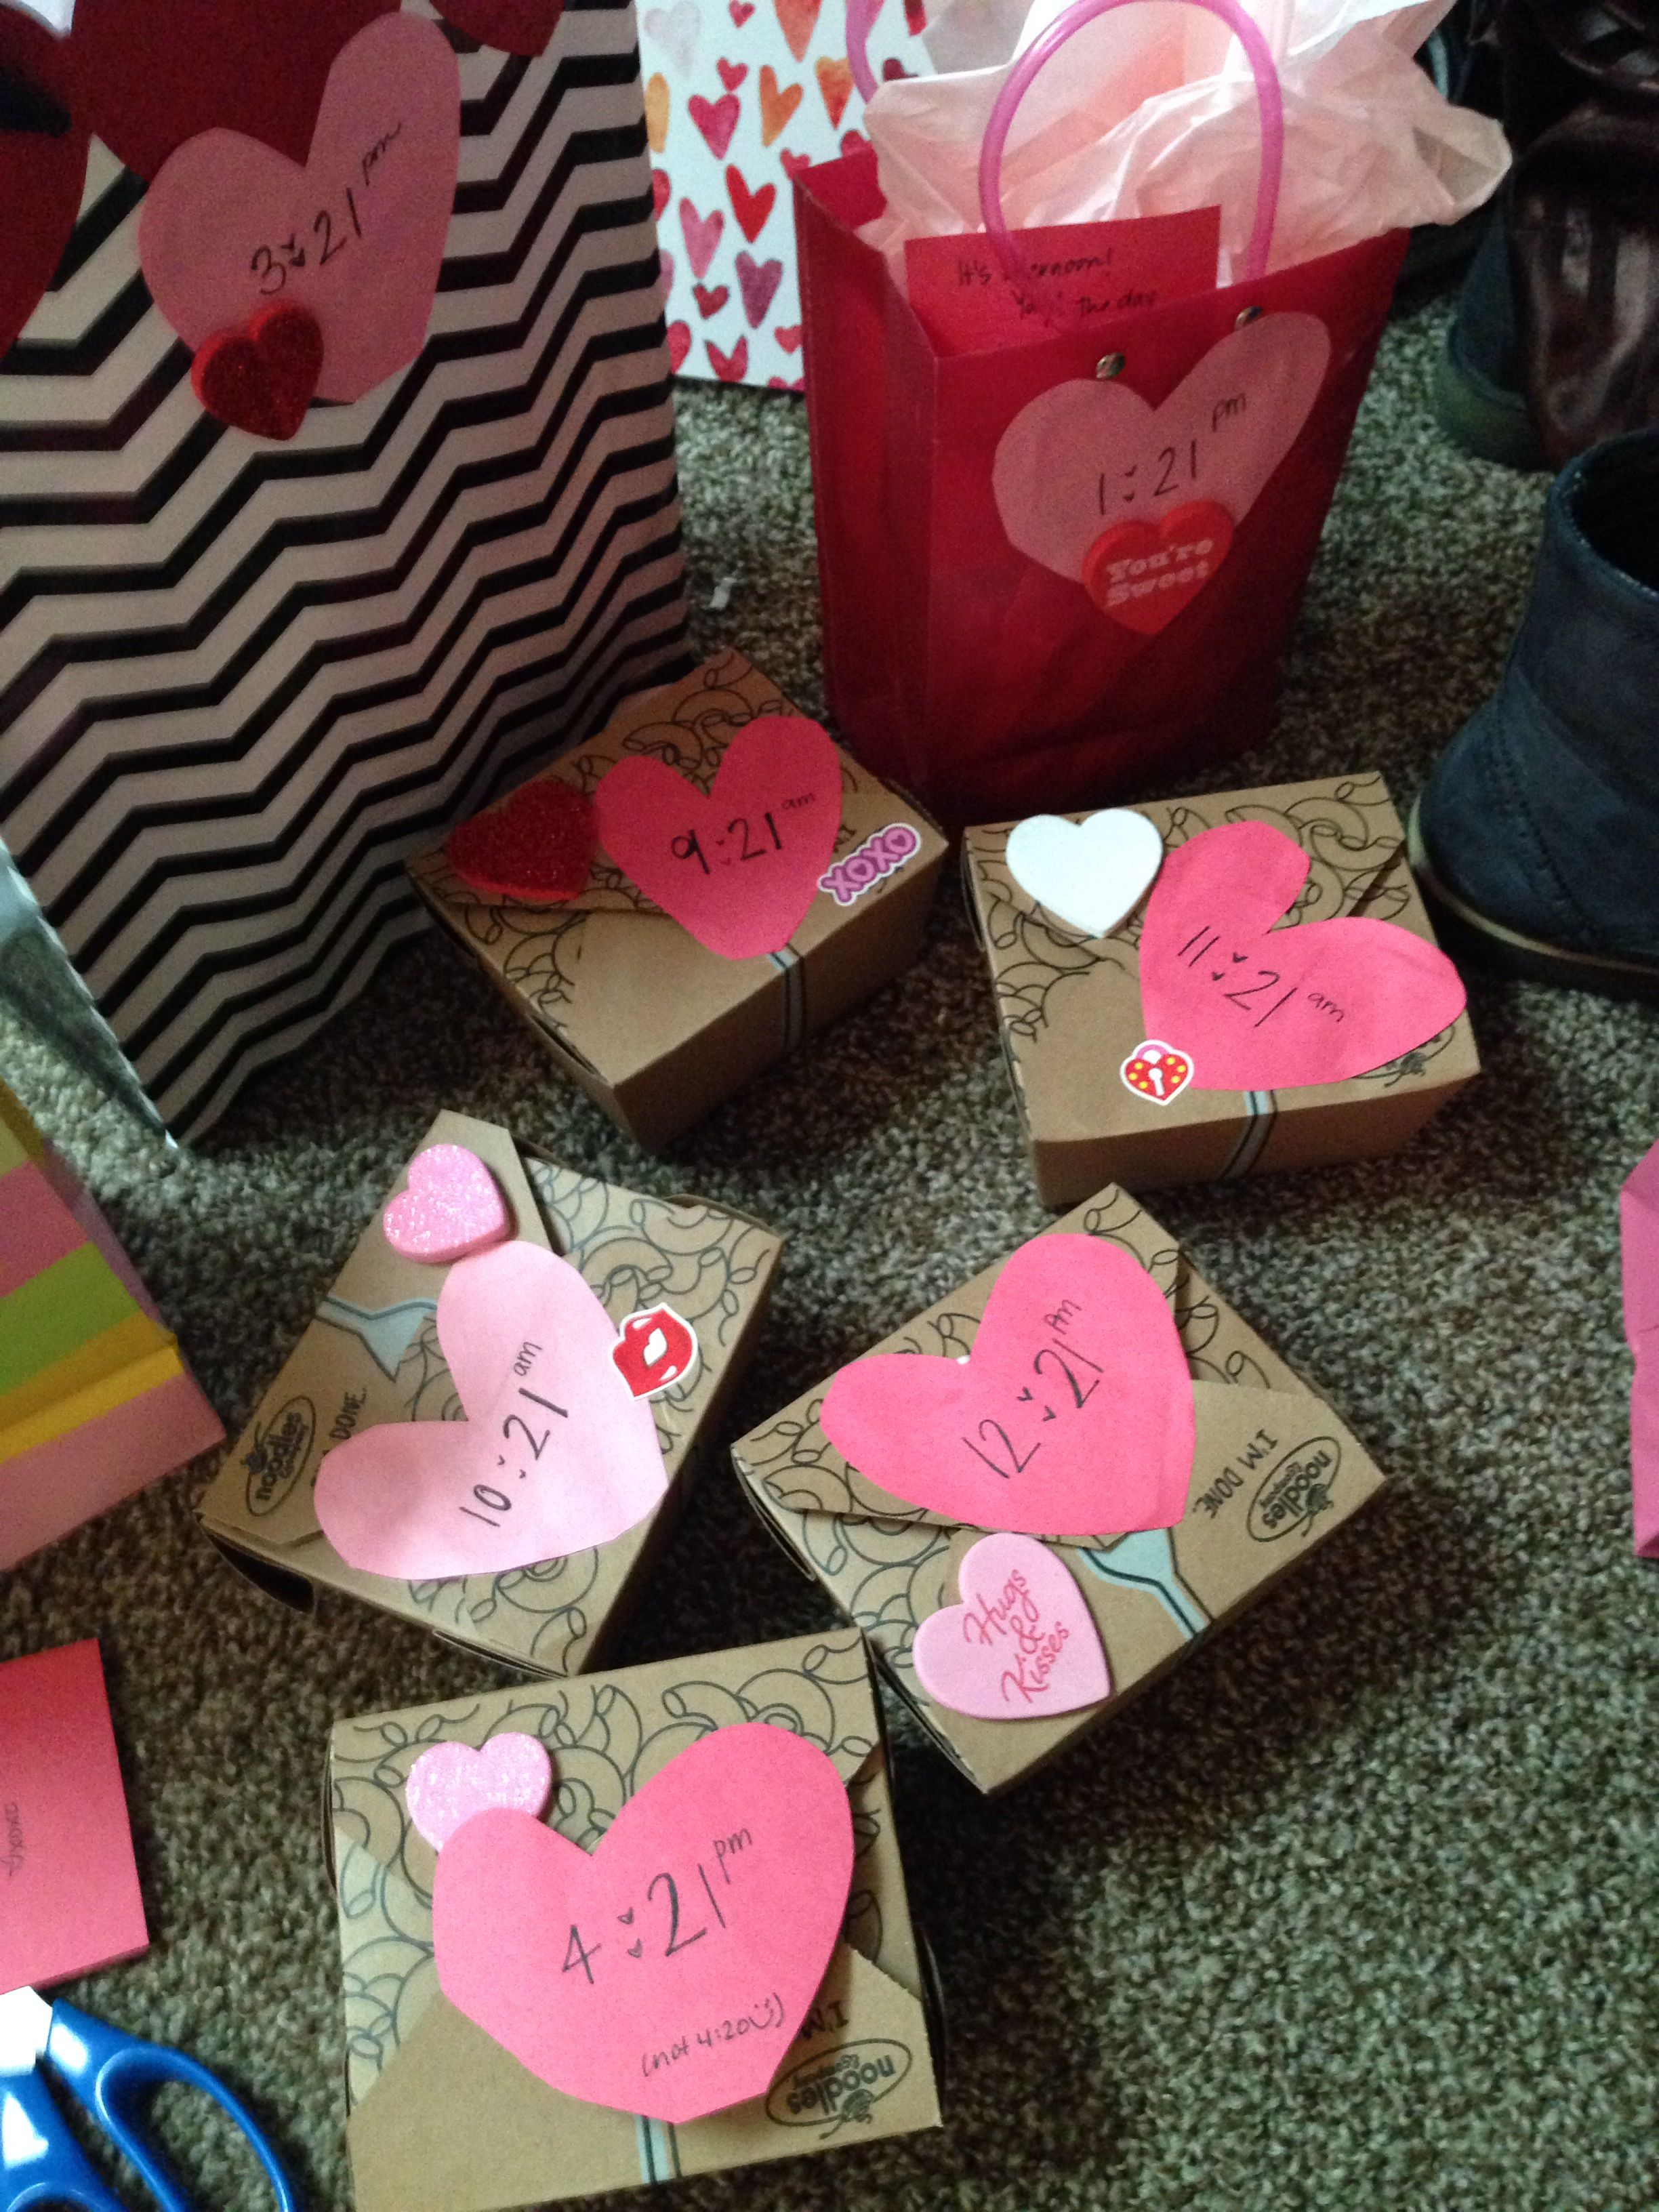 If you can't see your man during the day on Valentines day--- you can give a little gift every hour! It can all lead to one big present or little thoughtful gifts throughout the day